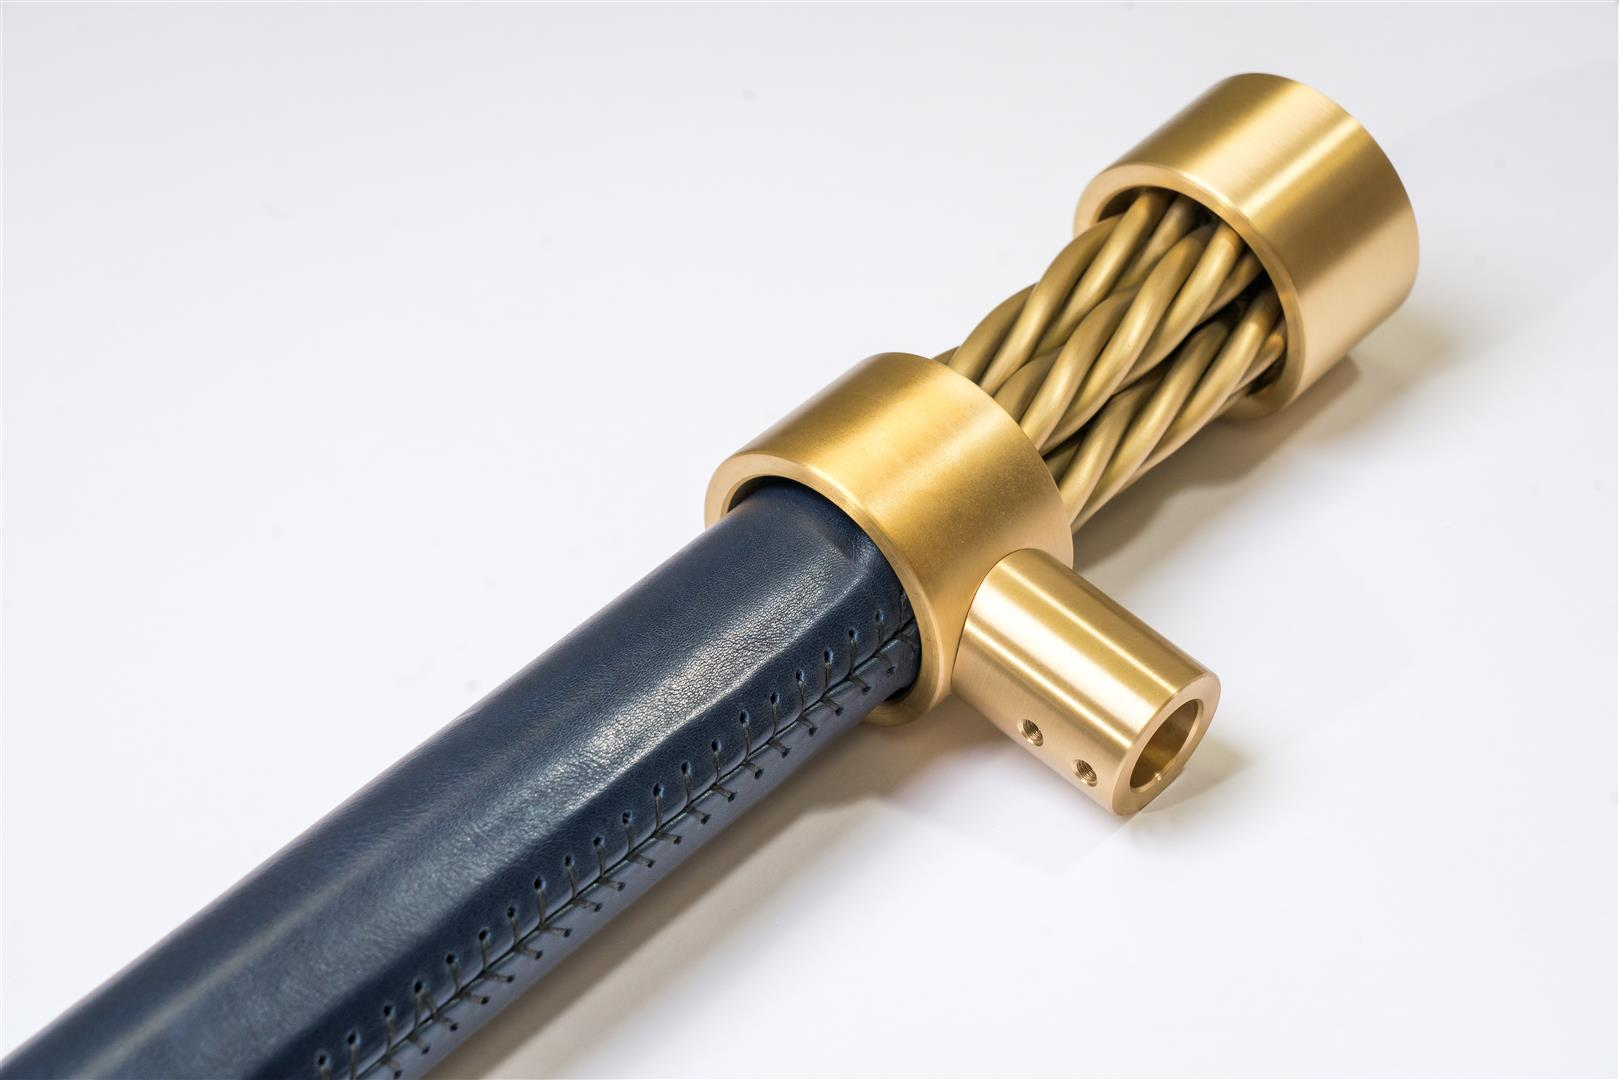 Leather and buffed brass make an excellent combination for door handles and other hardware. Navy Blue Long Wearing Leather shown here with lacquered brass.